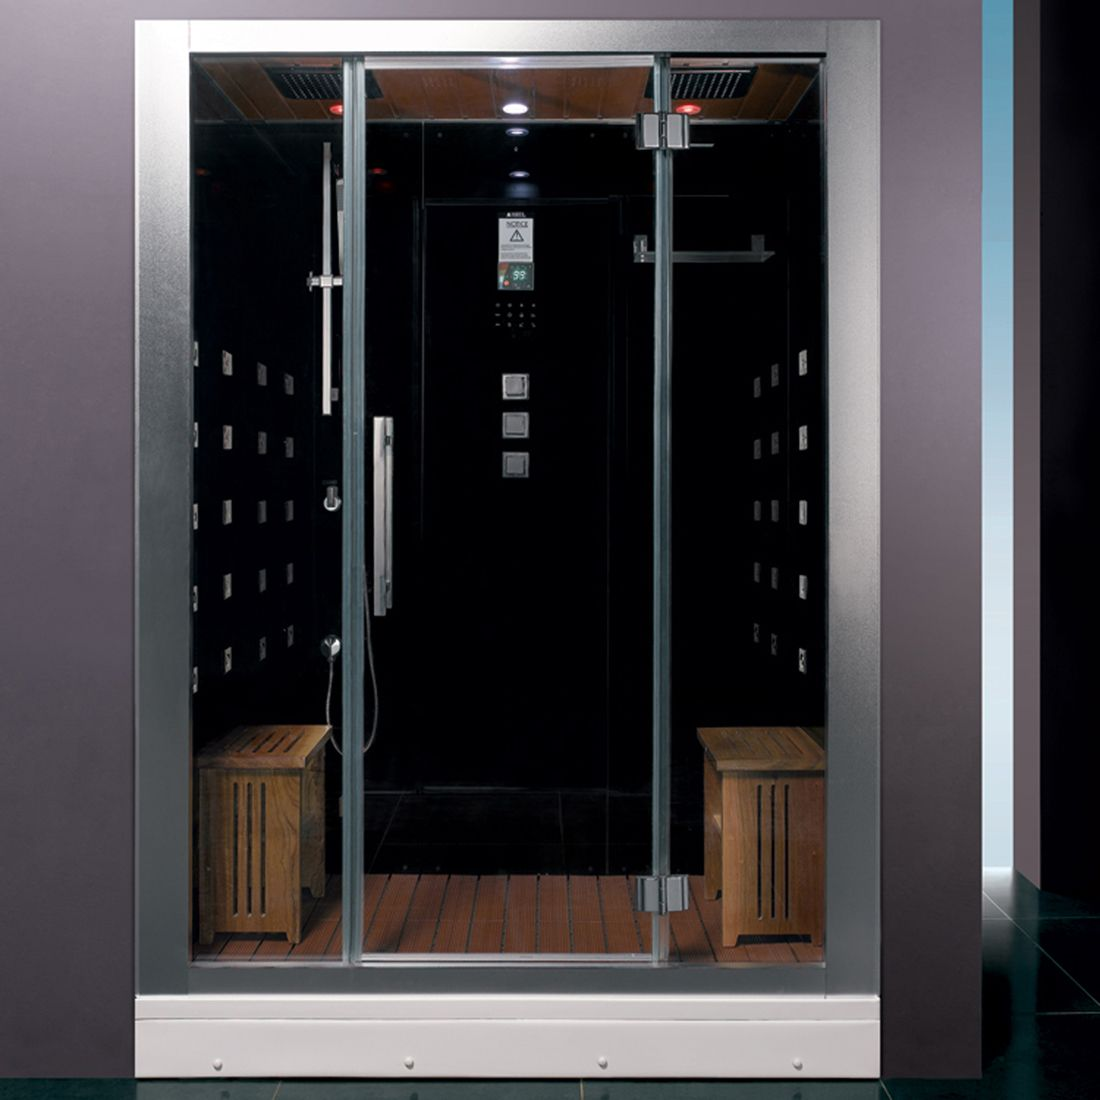 Ariel Platinum Dz972f8 Steam Shower Dz972 1f8 Blk Elite Fixtures